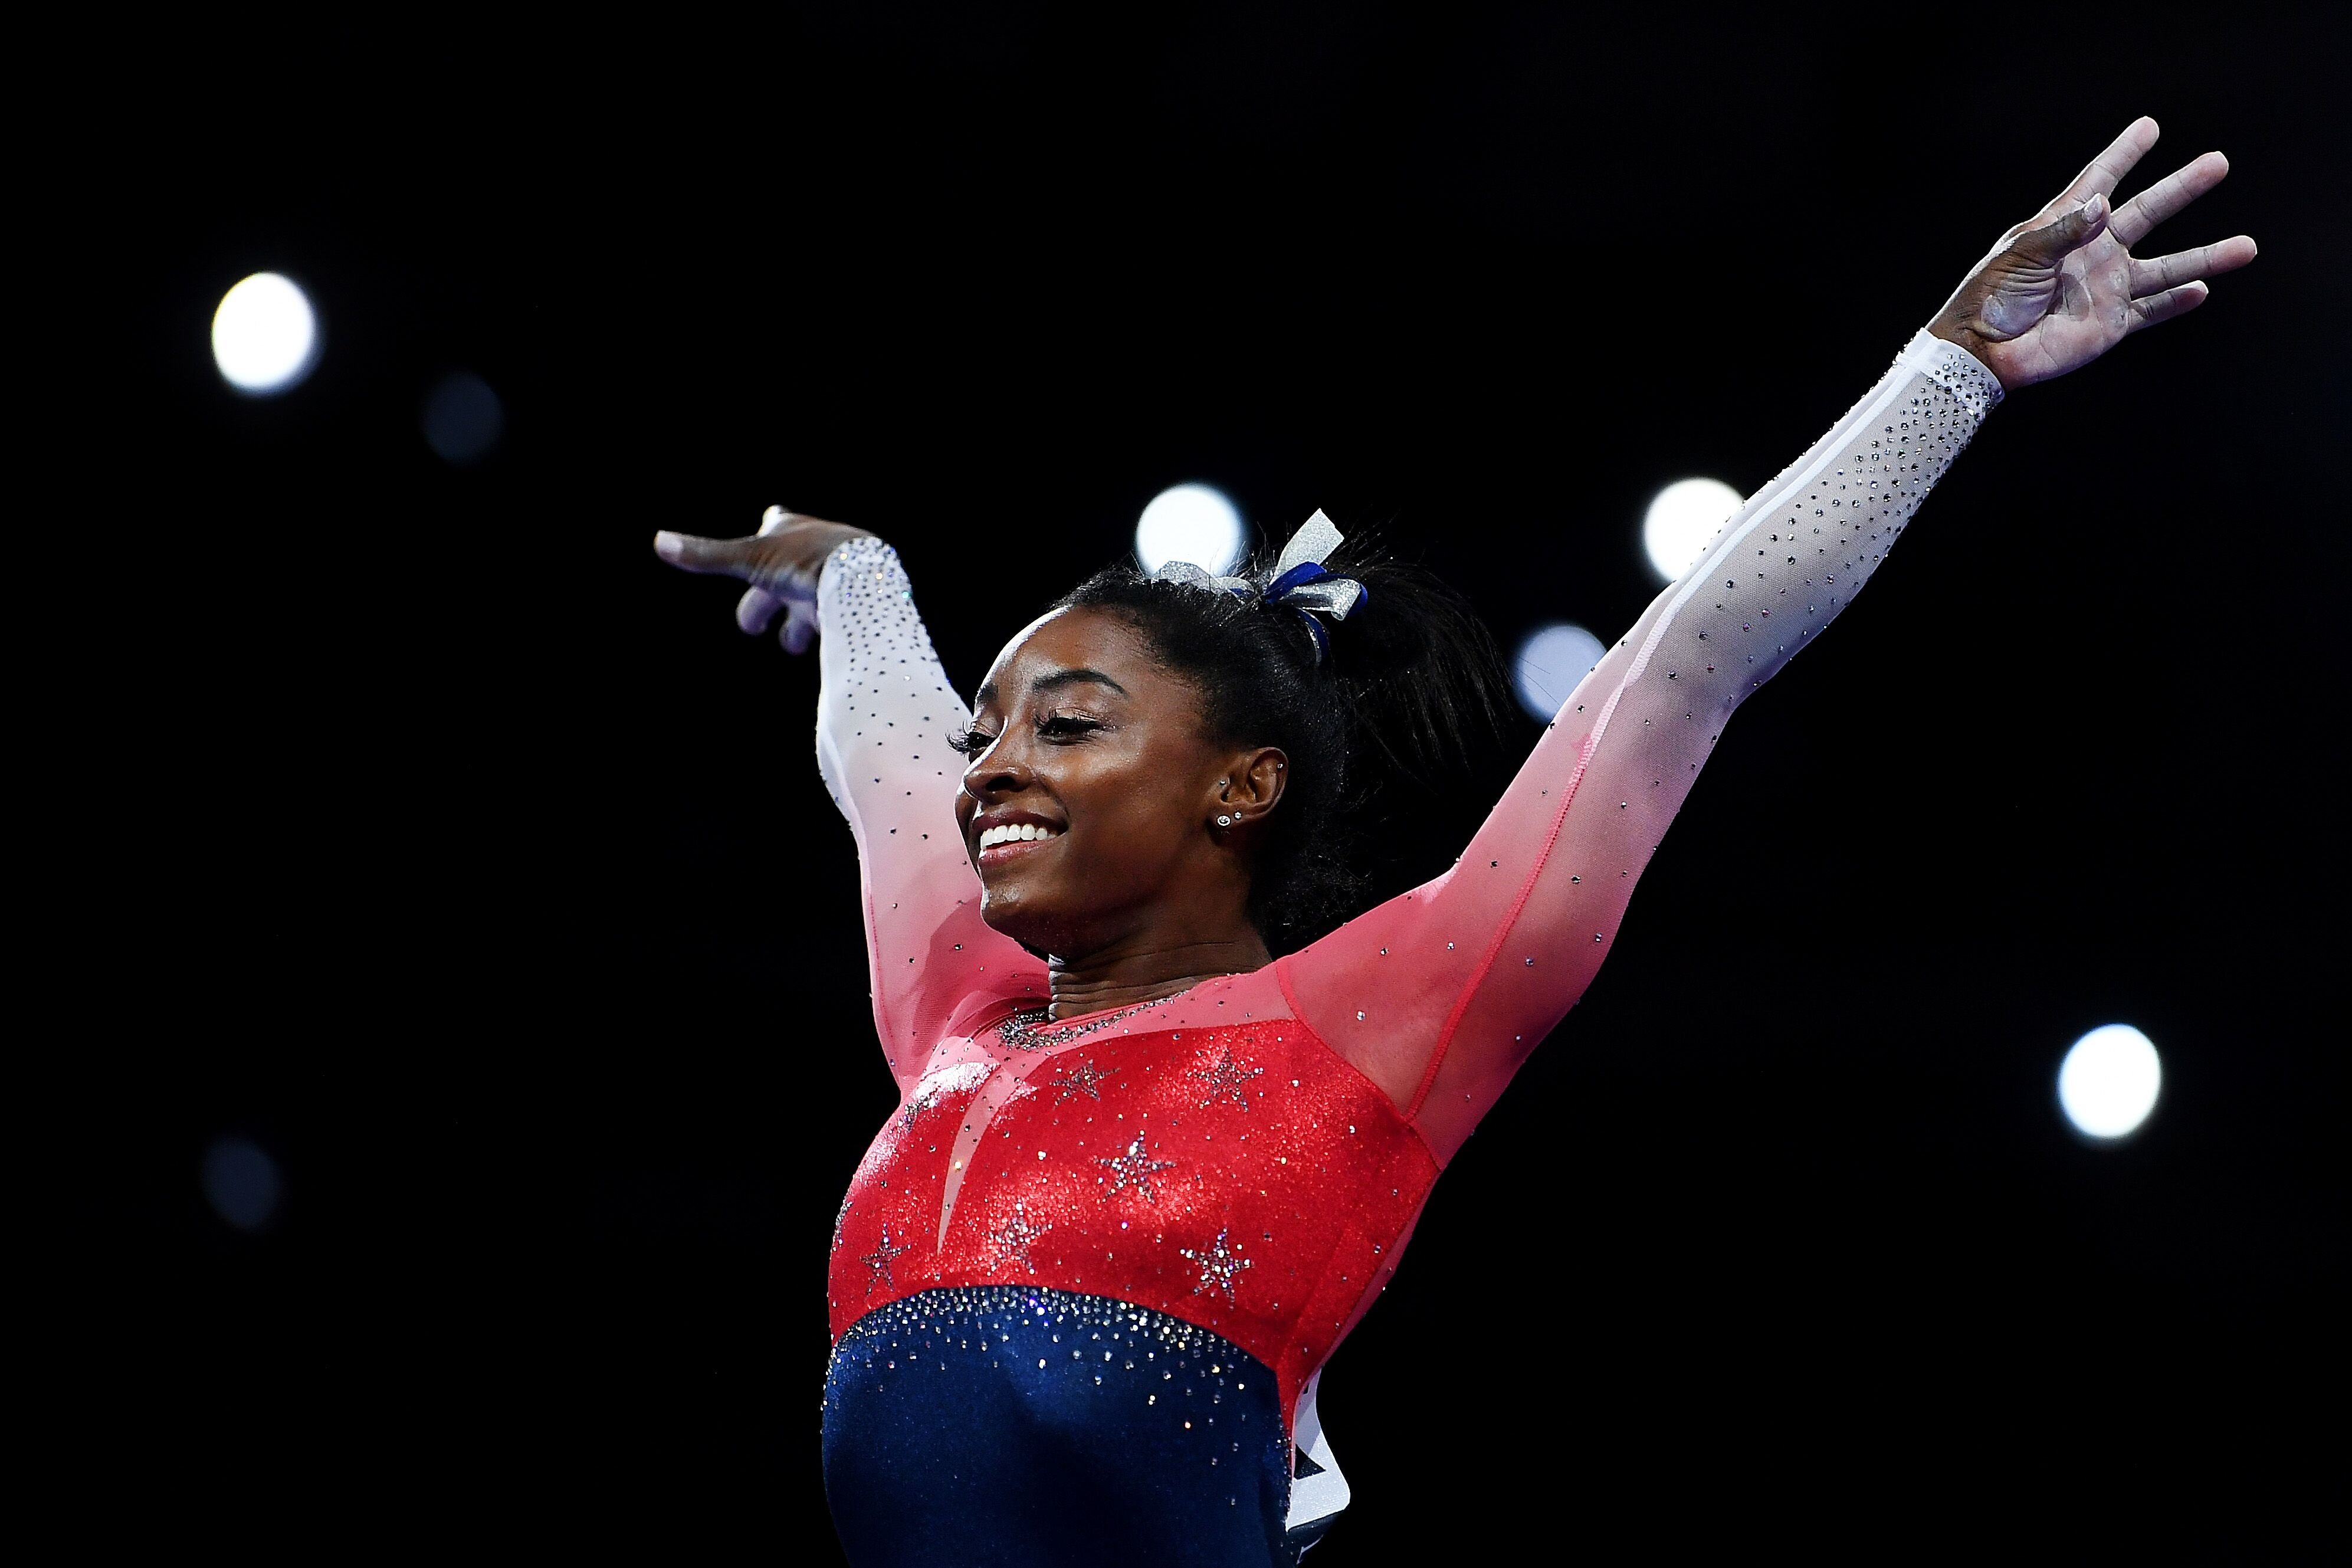 Simone Biles during the FIG Artistic Gymnastics World Championships on October 08, 2019. | Source: Getty Images